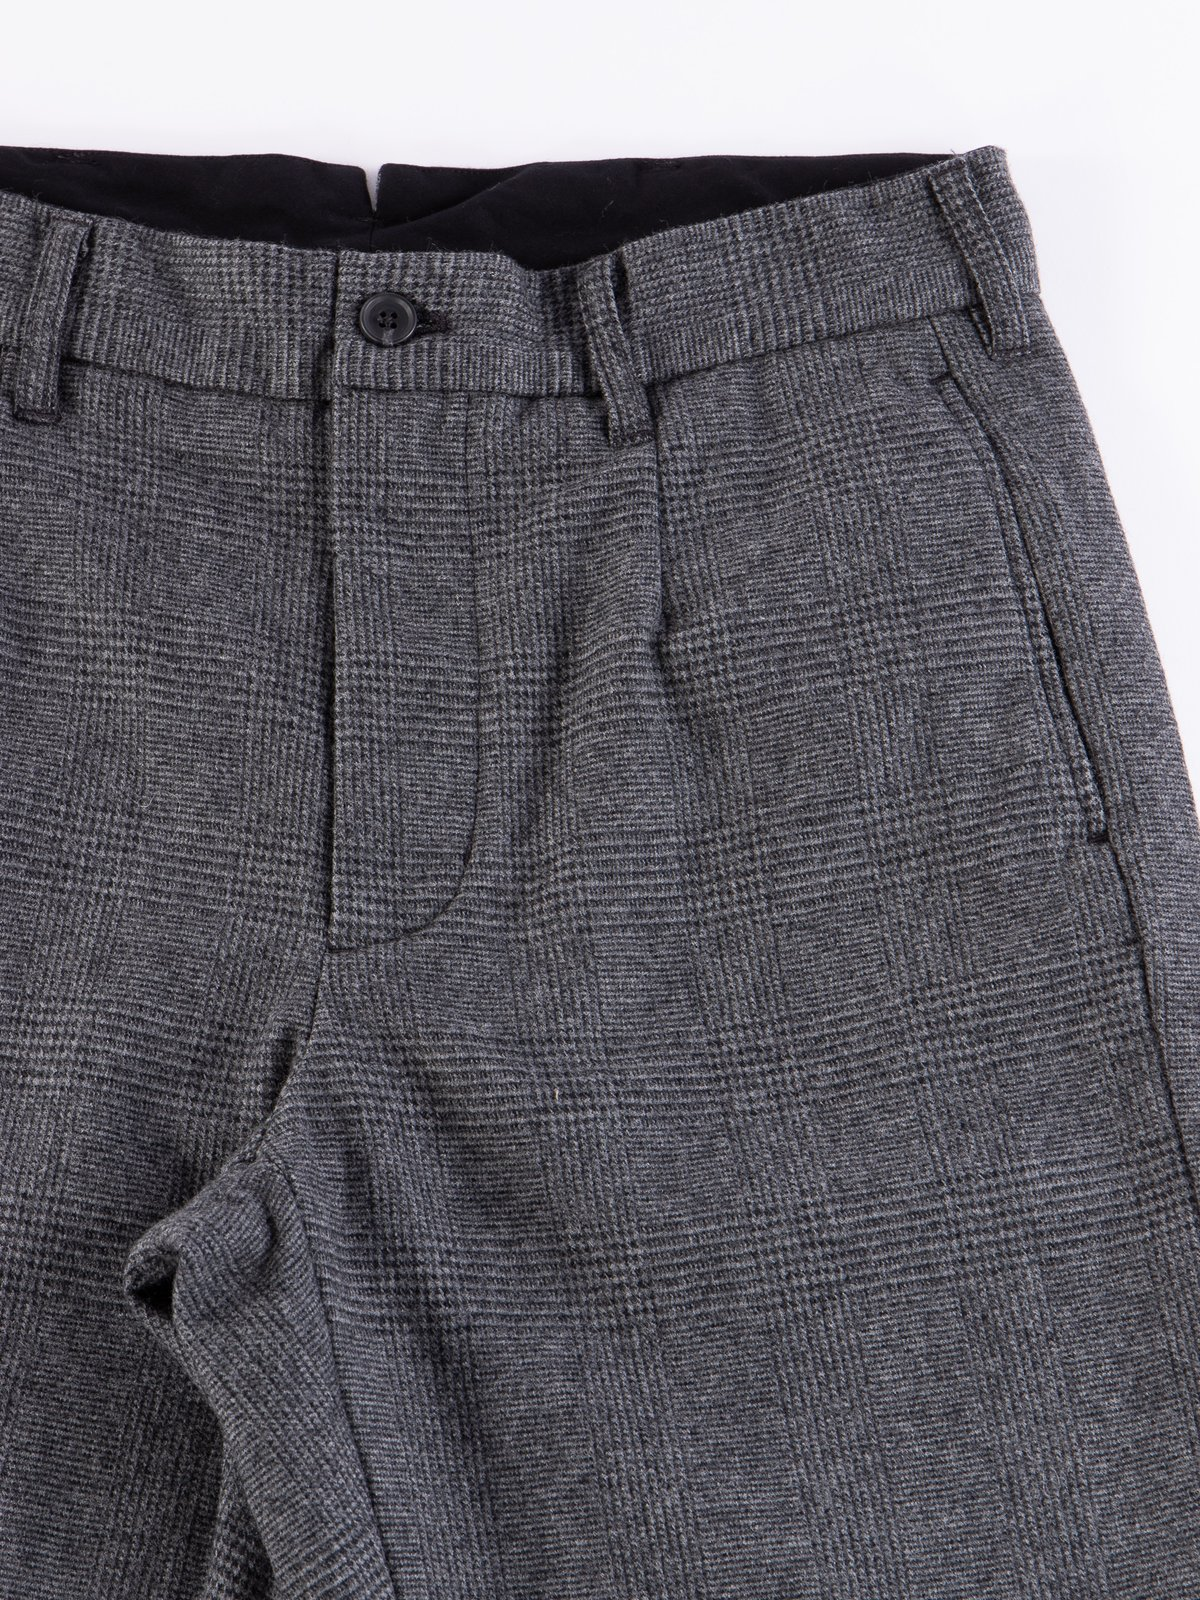 Grey Wool Glen Plaid Stripe Andover Pant - Image 4